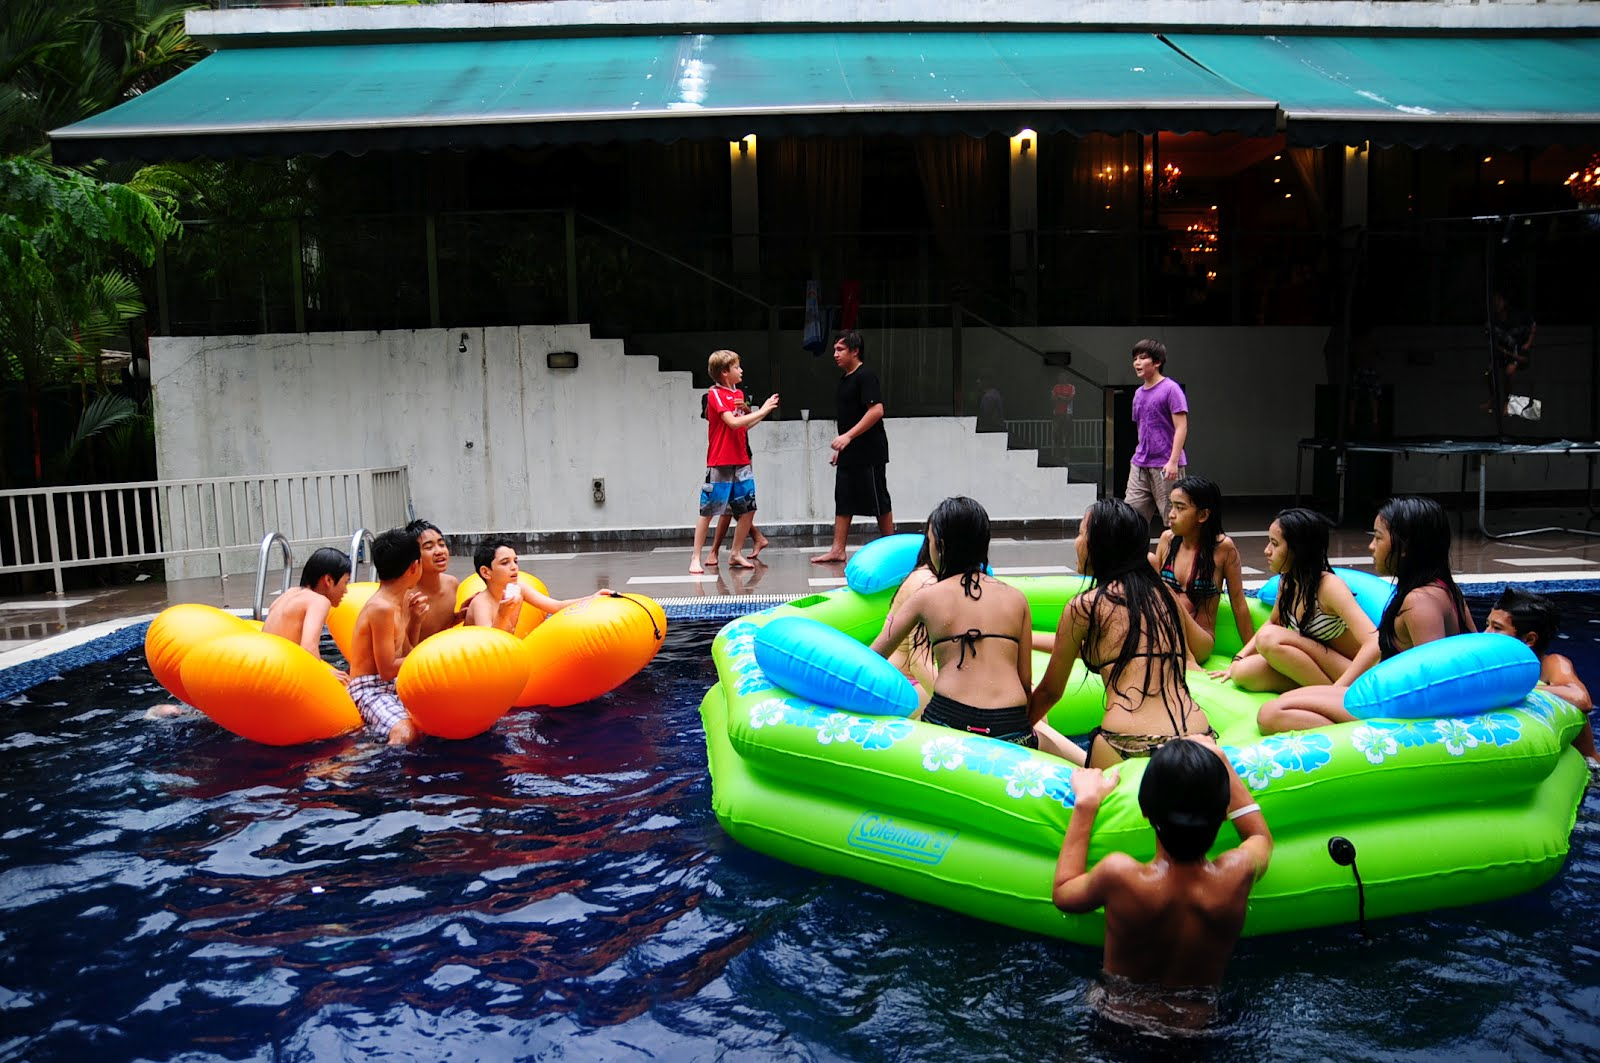 Adult pool party themes consider